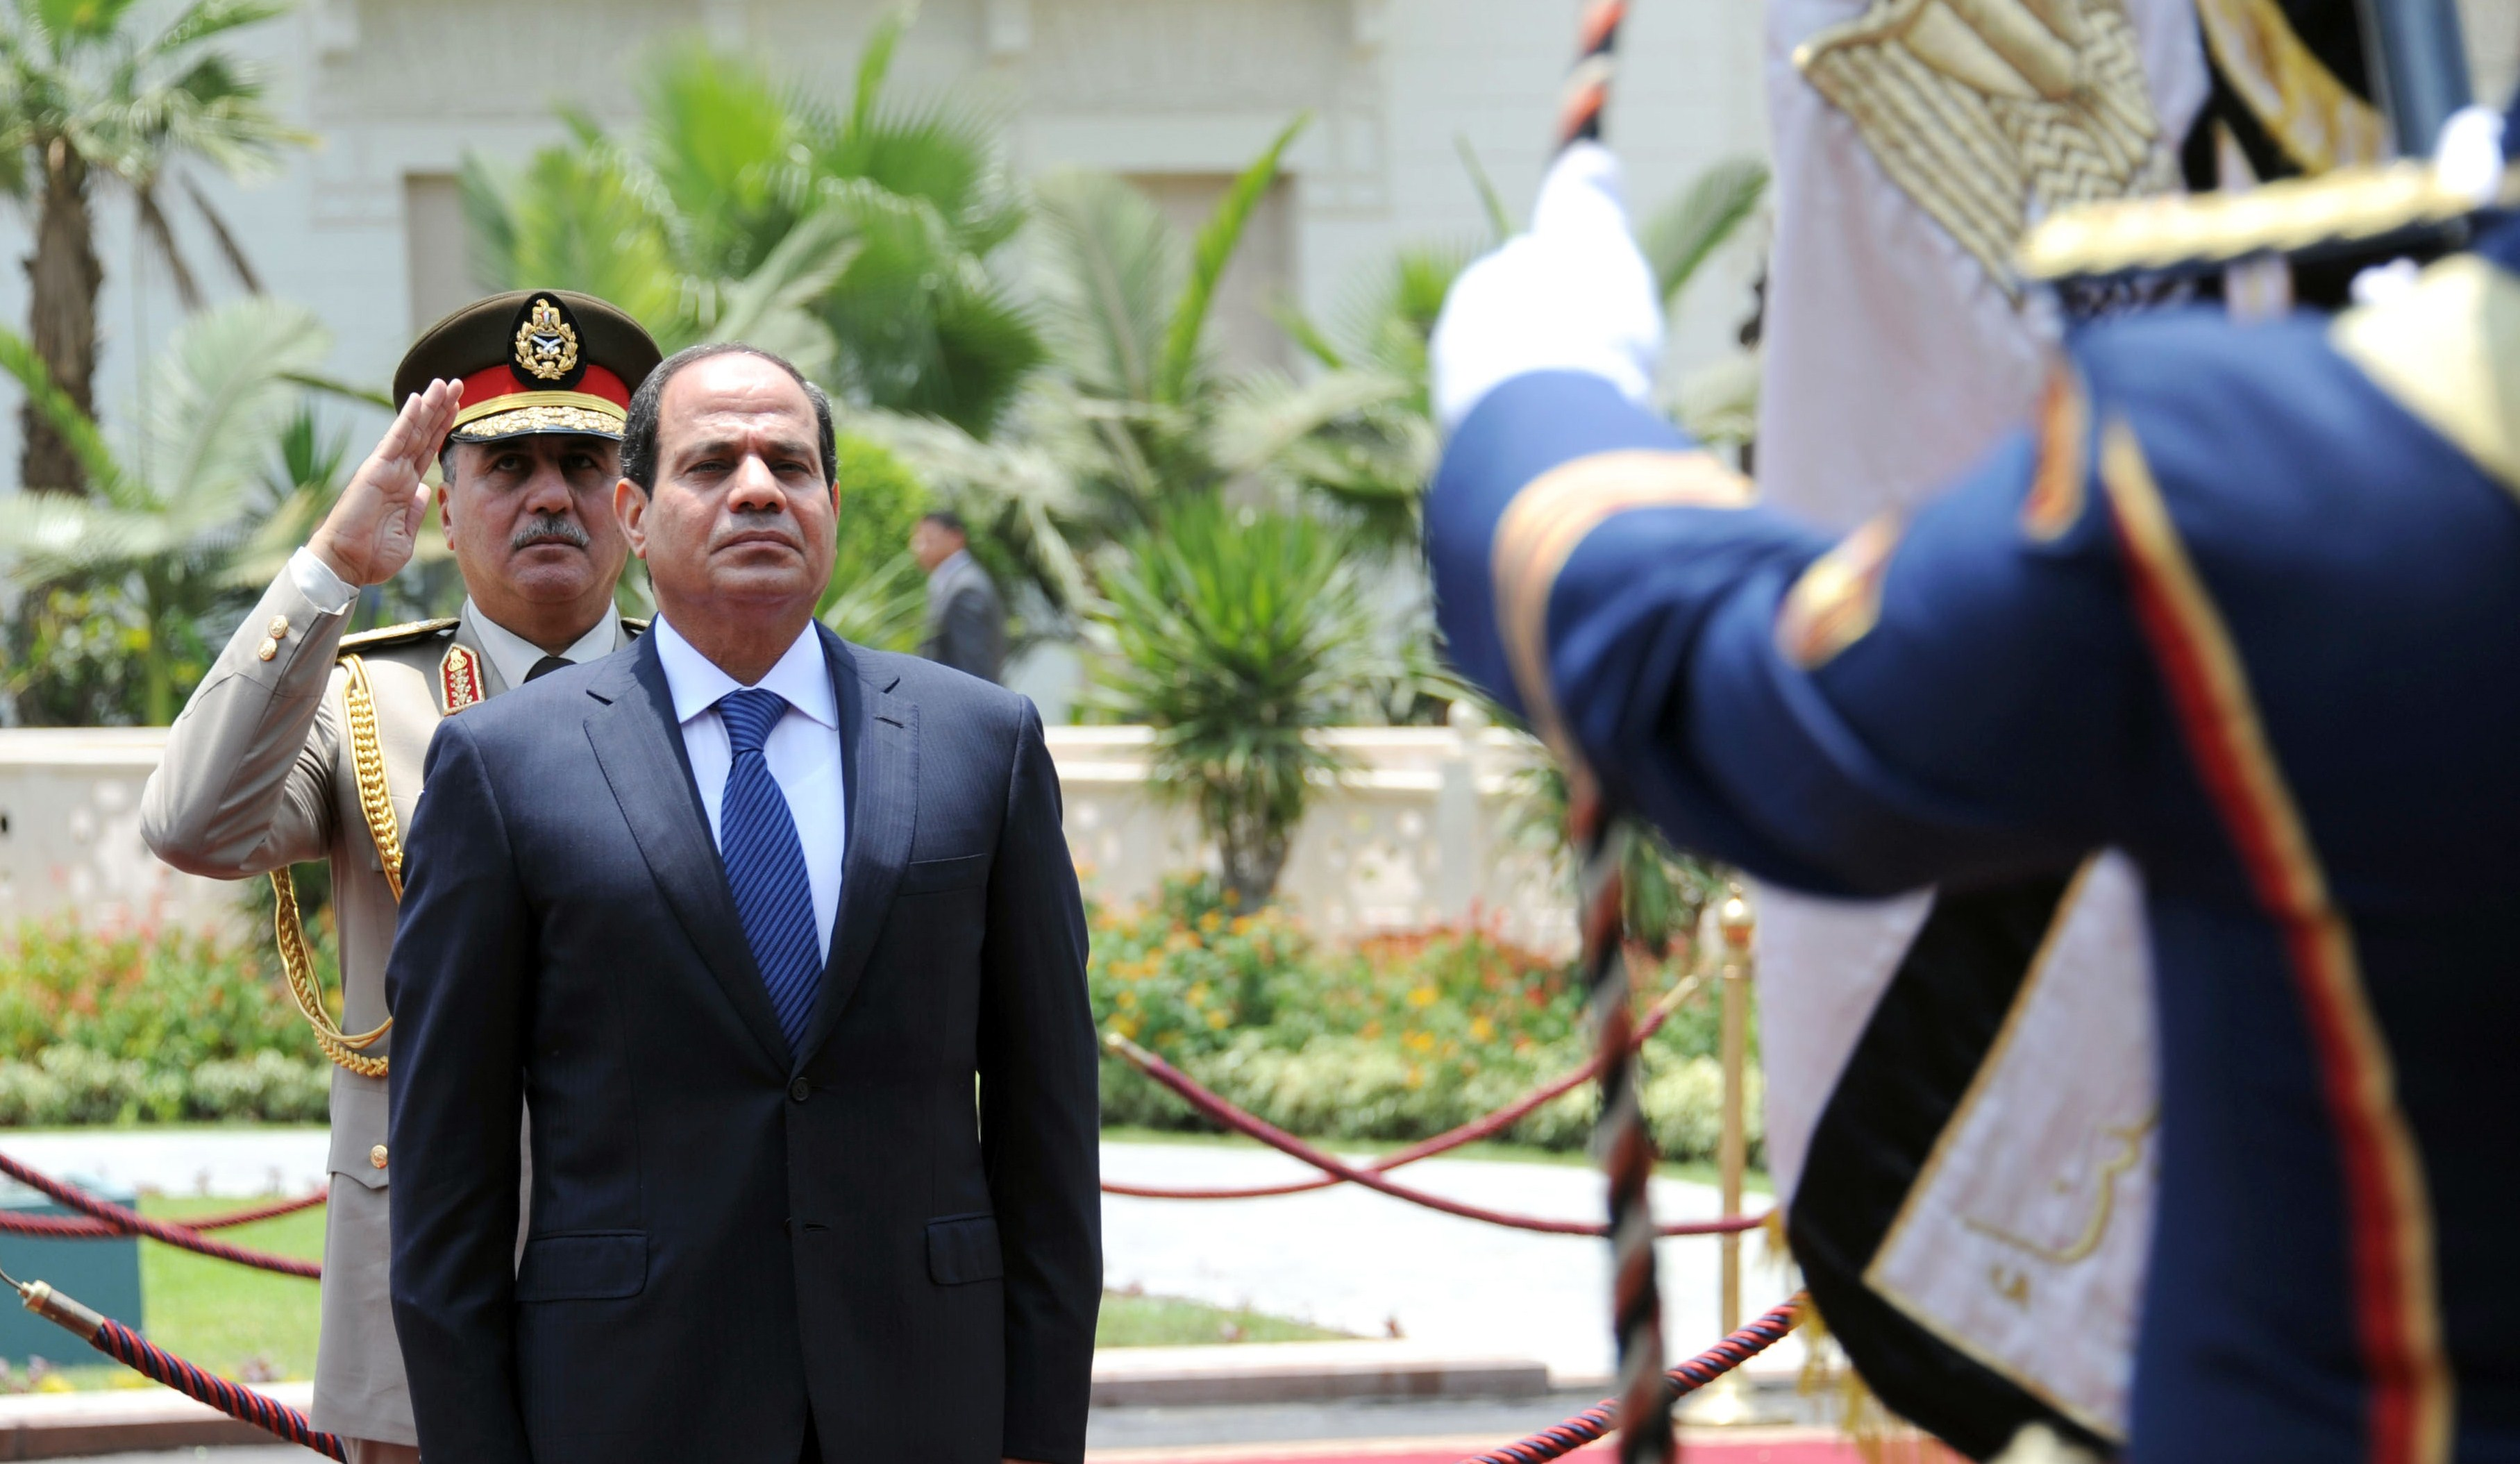 President Abdel Fattah Al-Sisi swore in Egypt's new cabinet early Tuesday morning, to include 14 new ministers and increasing the number of portfolios from 31 to 34. (AFP PHOTO / HO / EGYPTIAN PRESIDENCY)